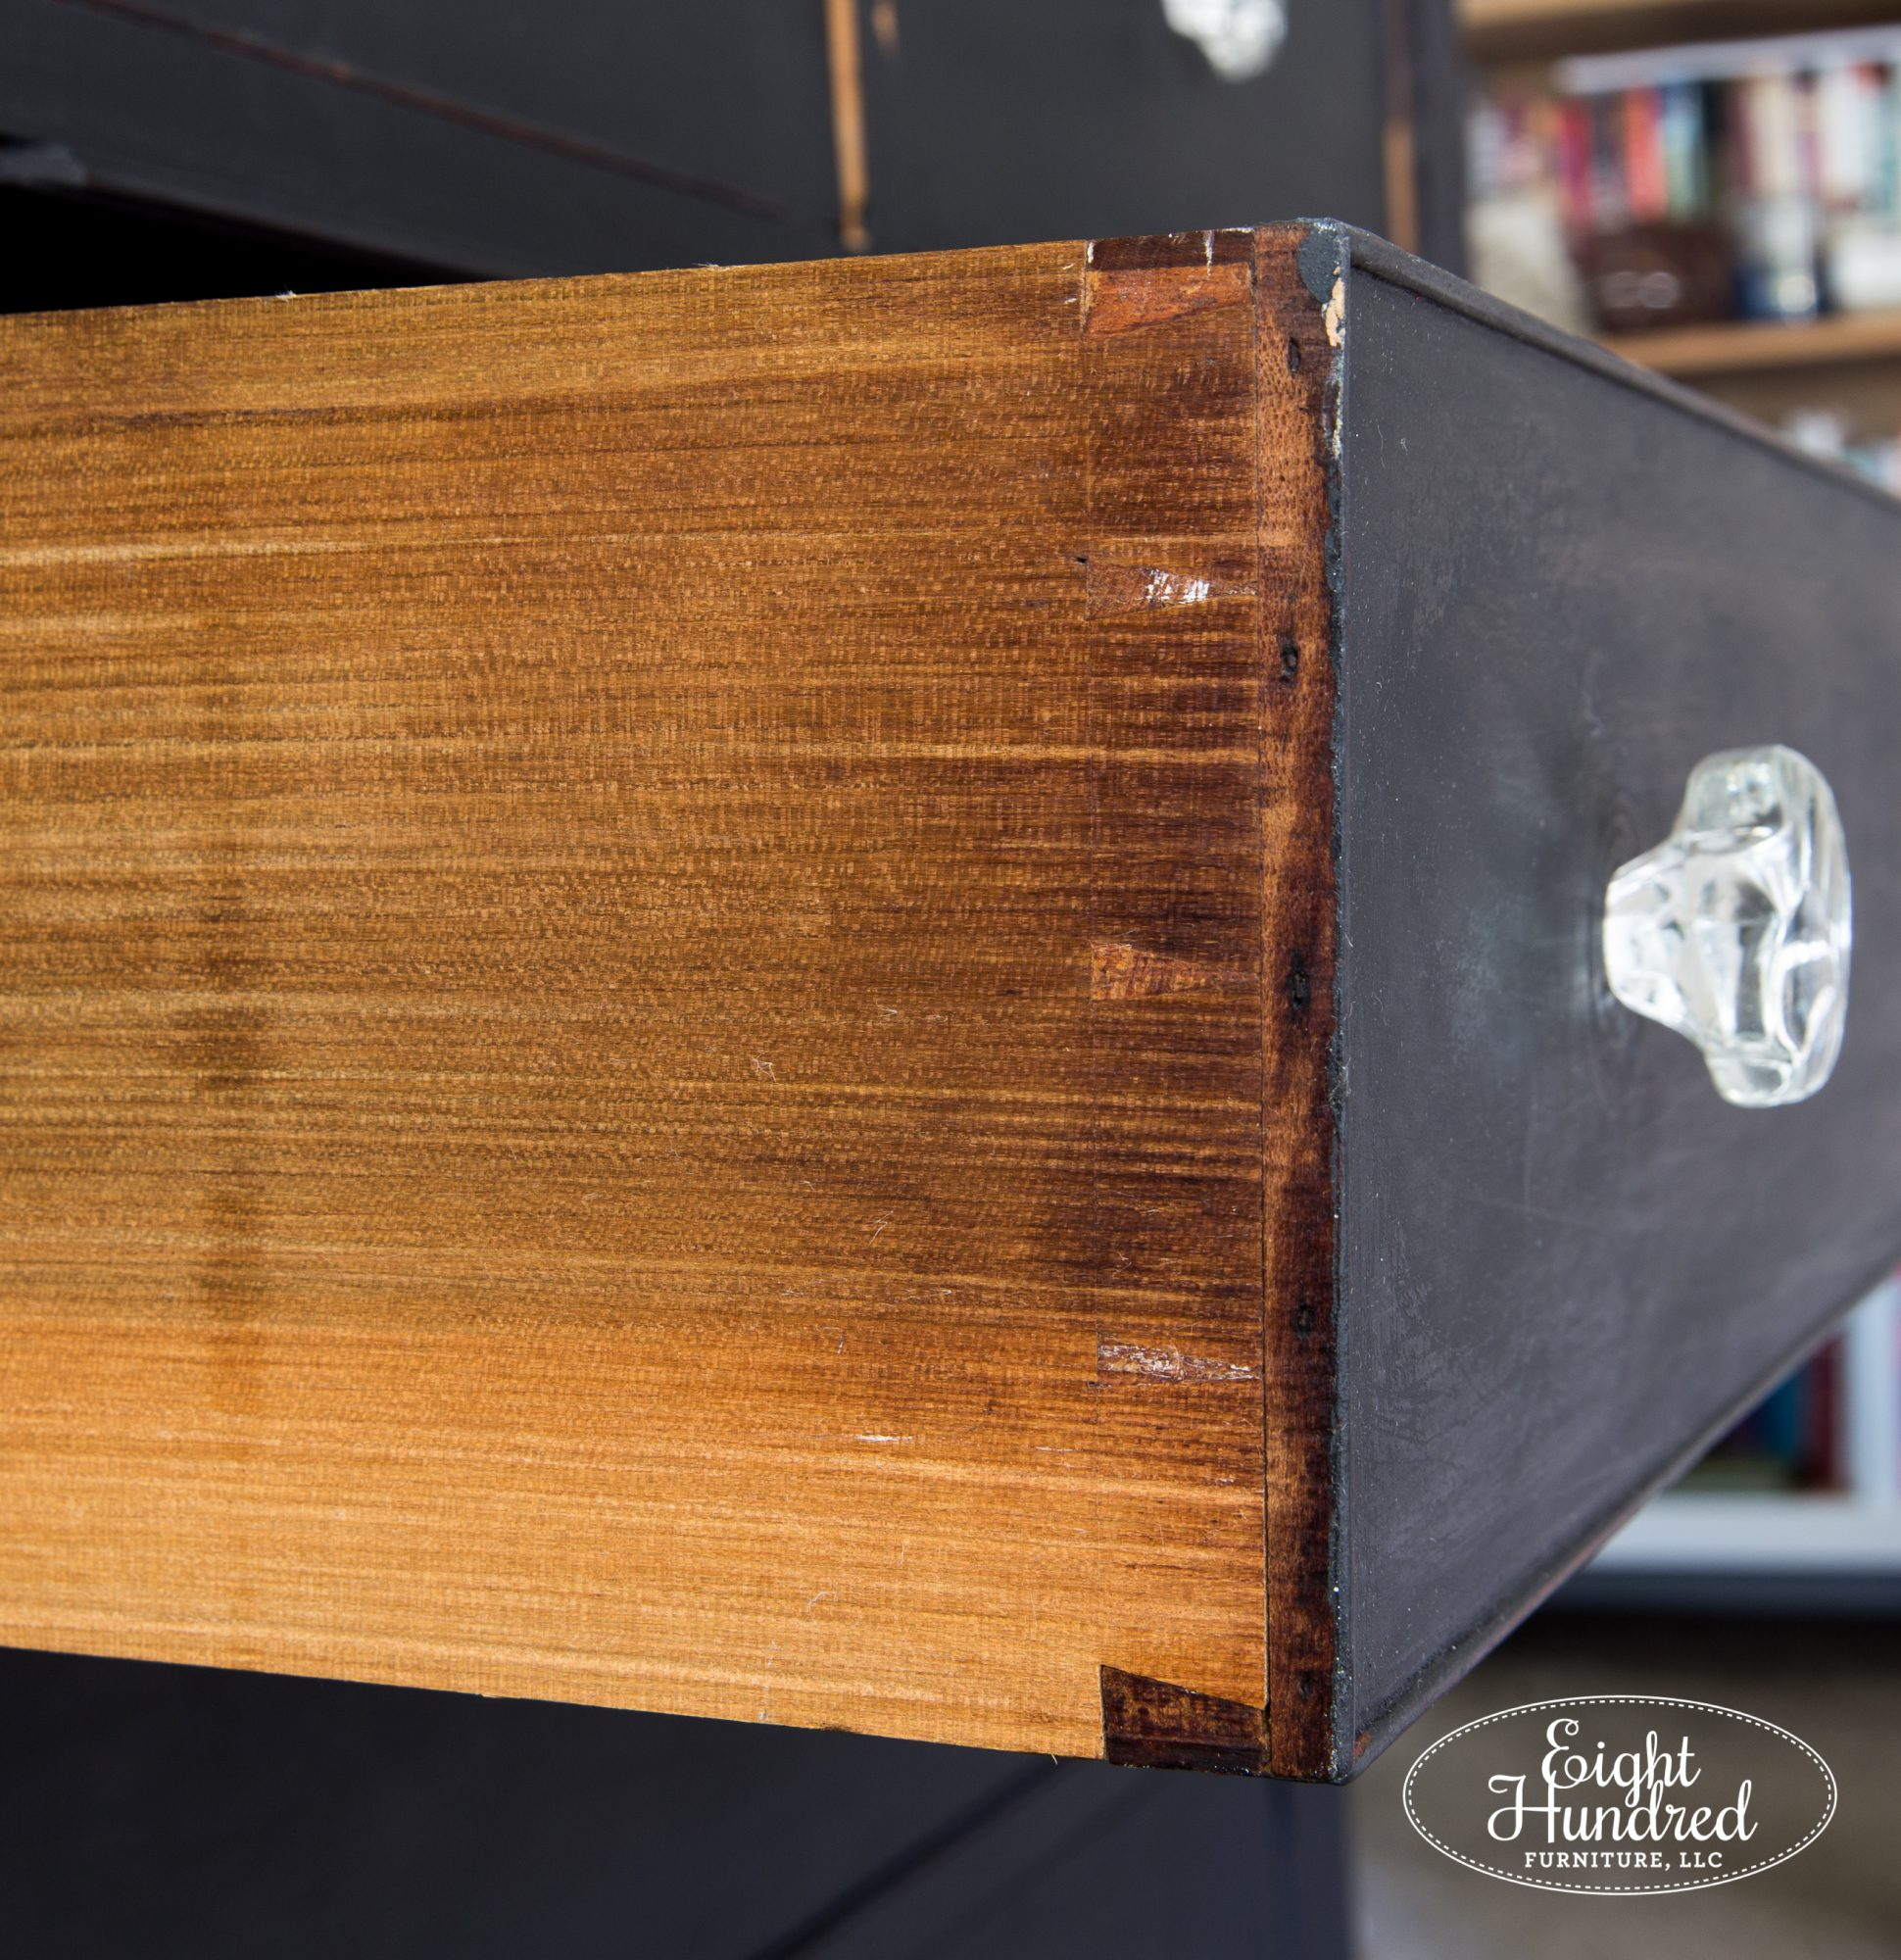 Hand cut dovetailed joints on Empire Dresser by Eight Hundred Furniture